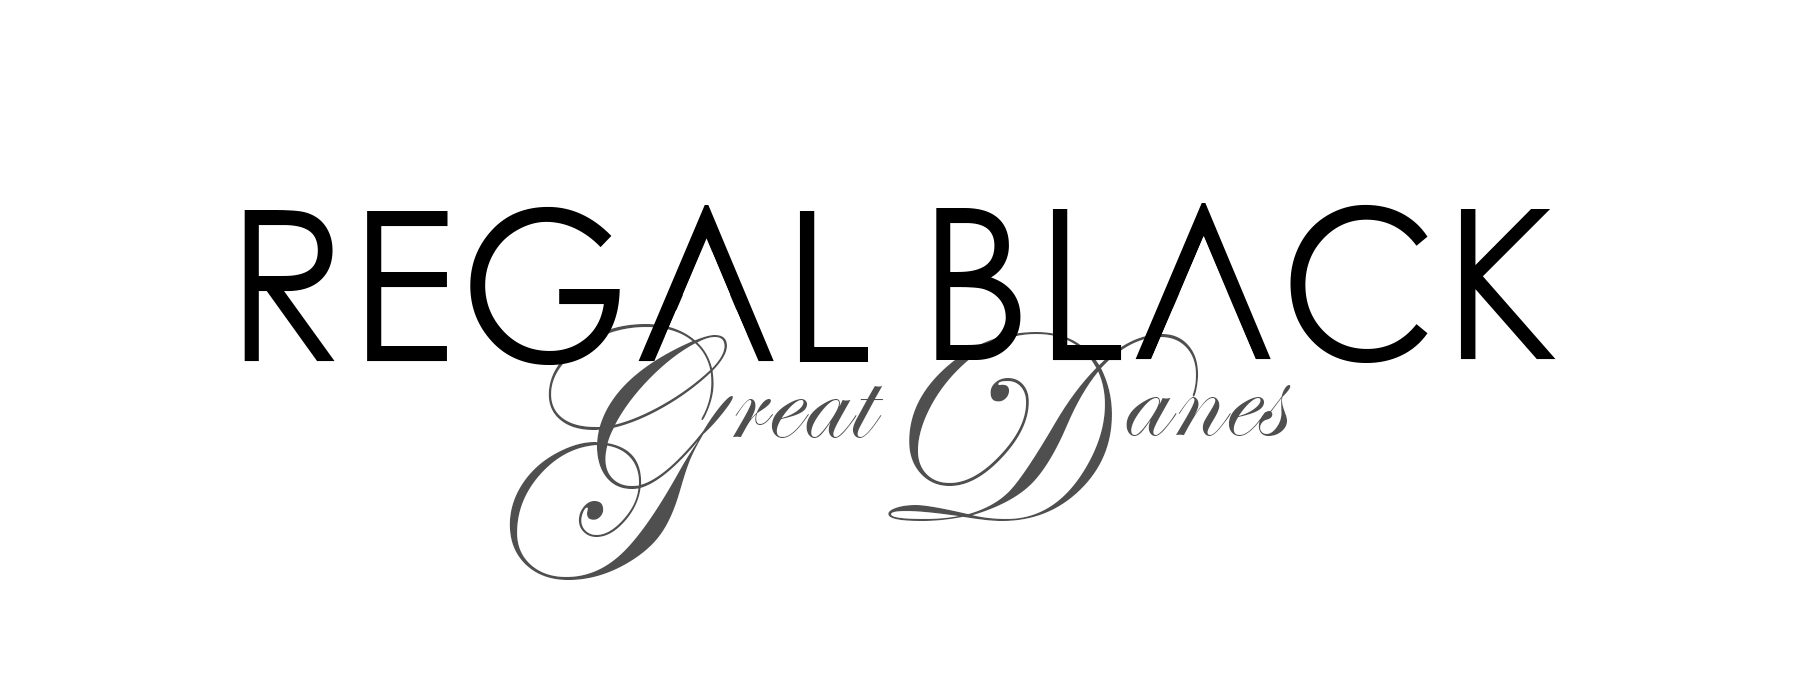 Regal Black Great Danes